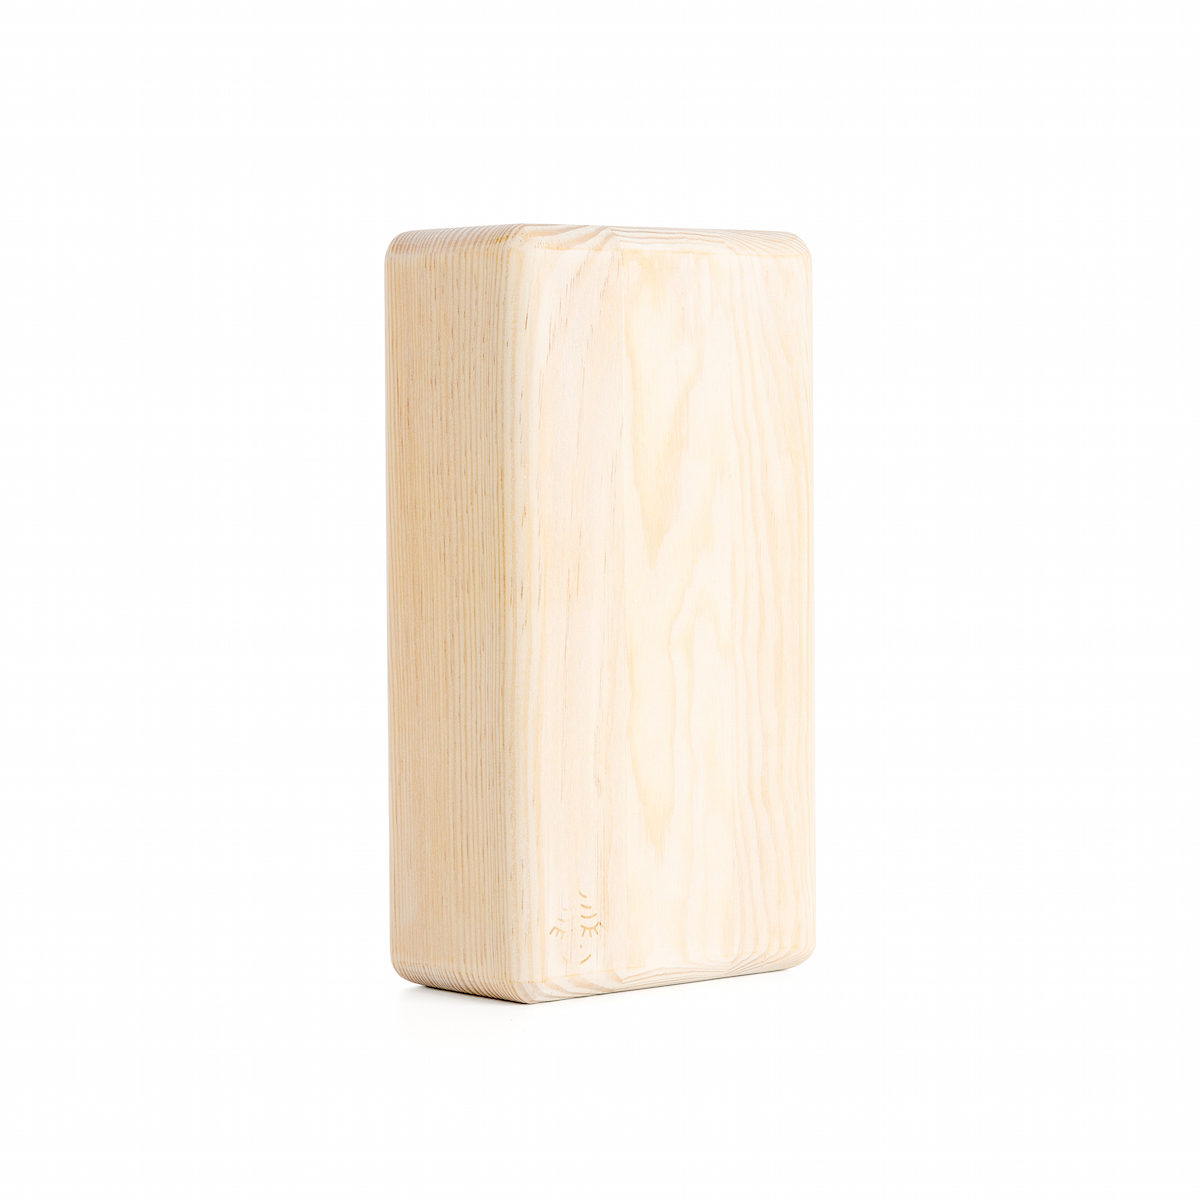 wooden kaolin white yoga block, yoga accessorize